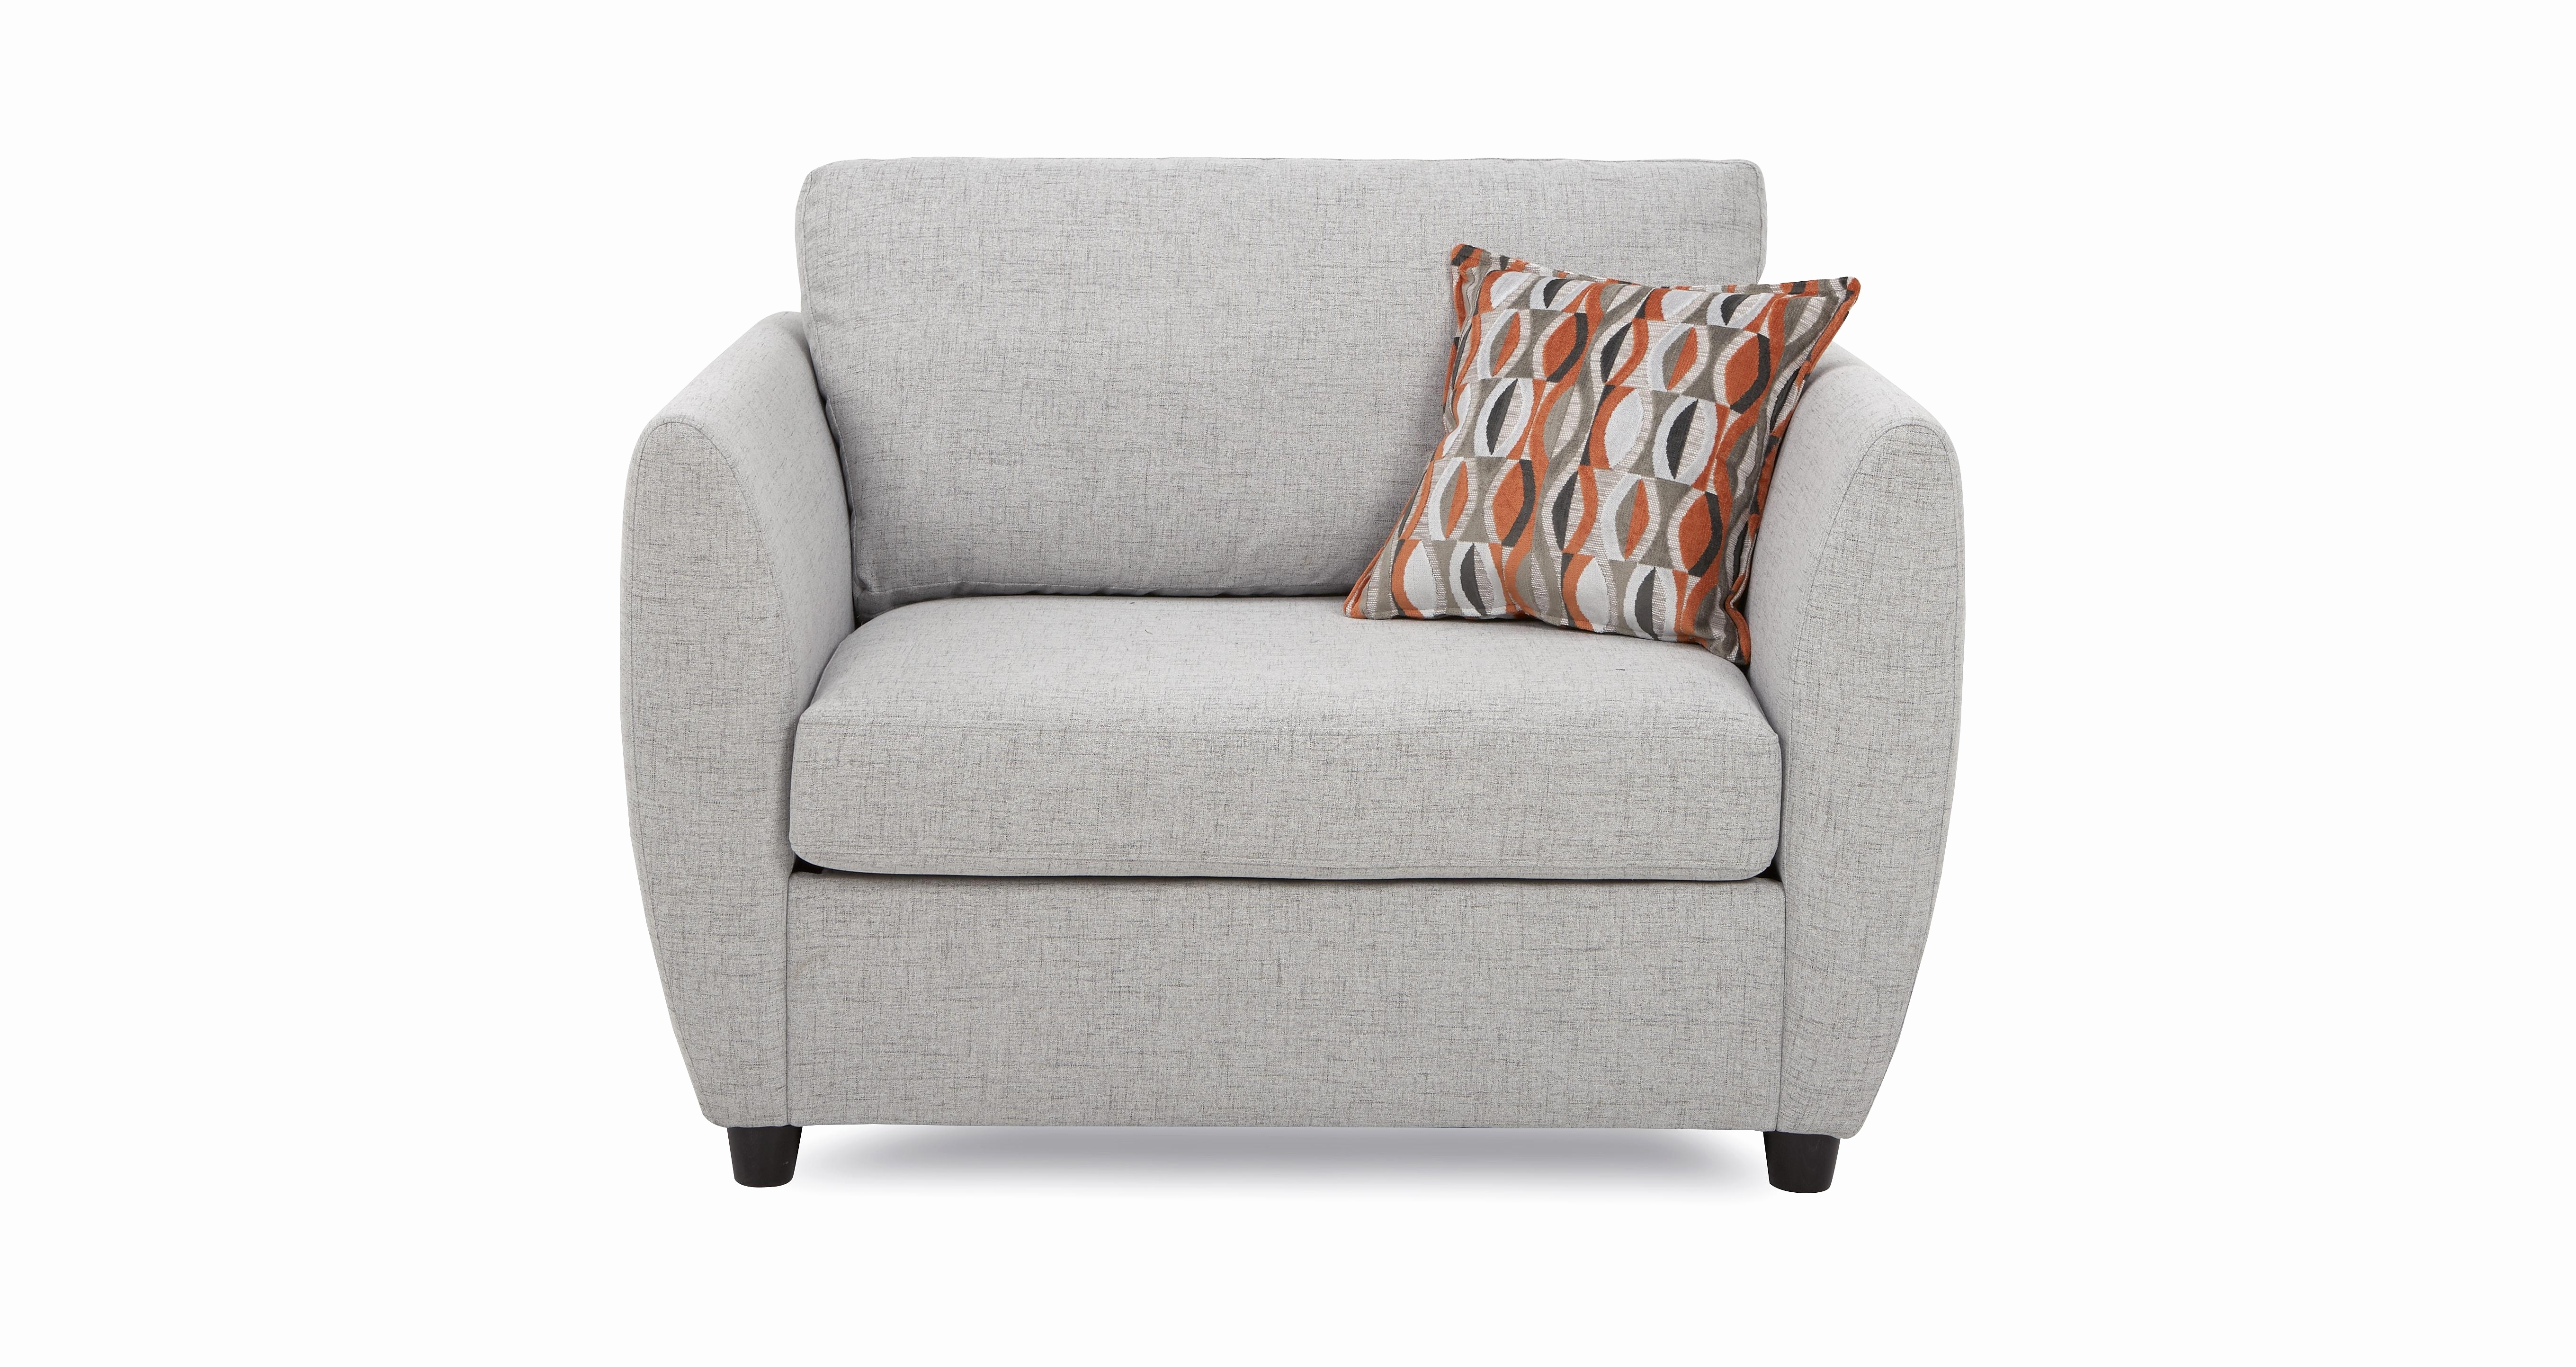 Ebay Armchairs For Sale Beautiful Sofa Gorgeous Single Sofa Chair Throughout Best And Newest Single Sofa Chairs (Gallery 4 of 20)